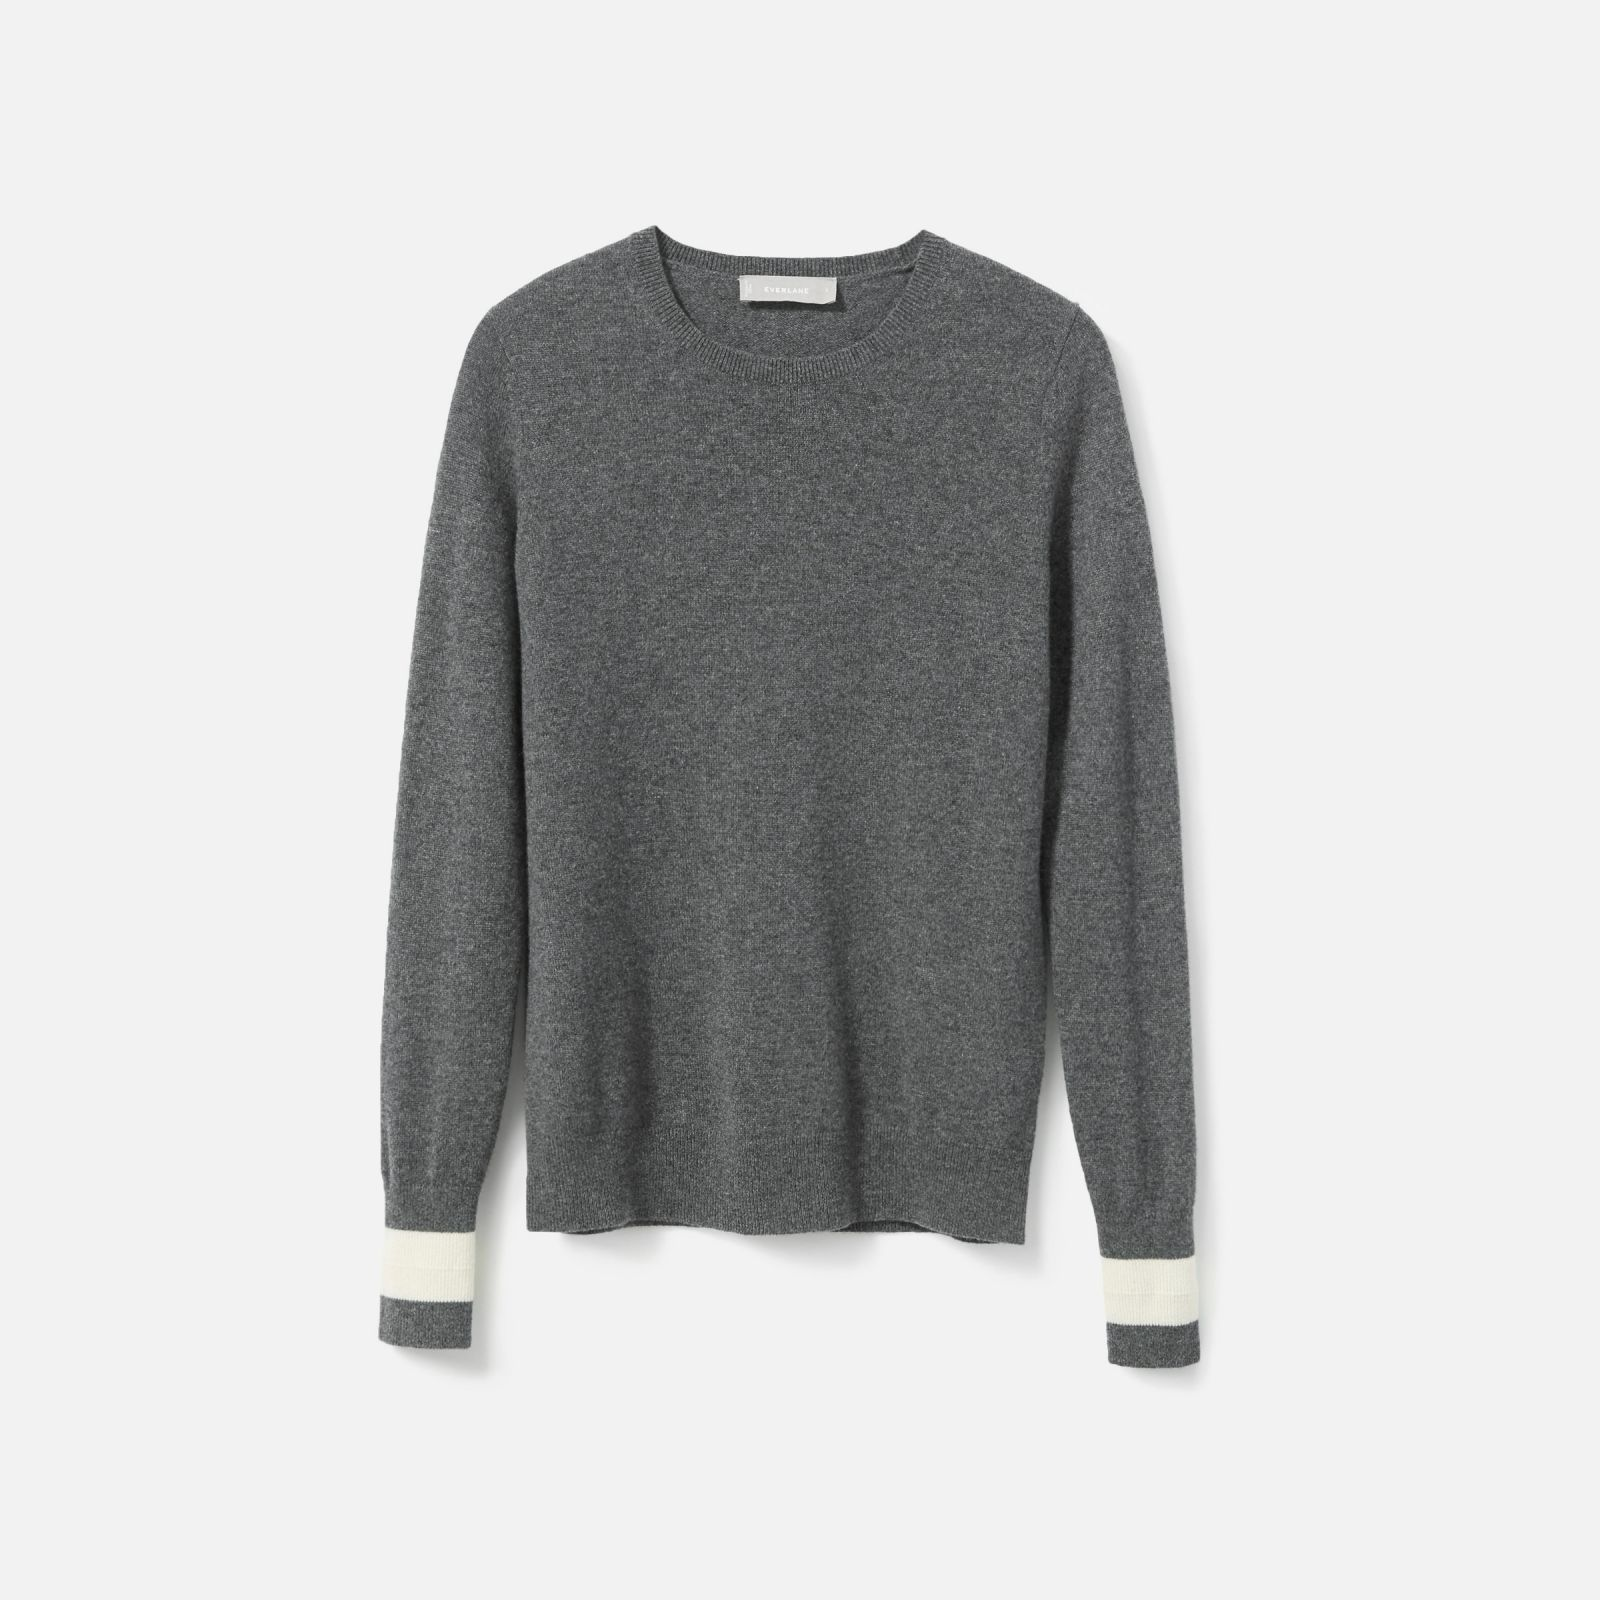 4410bad4a1ca Women s Cashmere Crew Sweater by Everlane in Charcoal   Bone Tipped ...